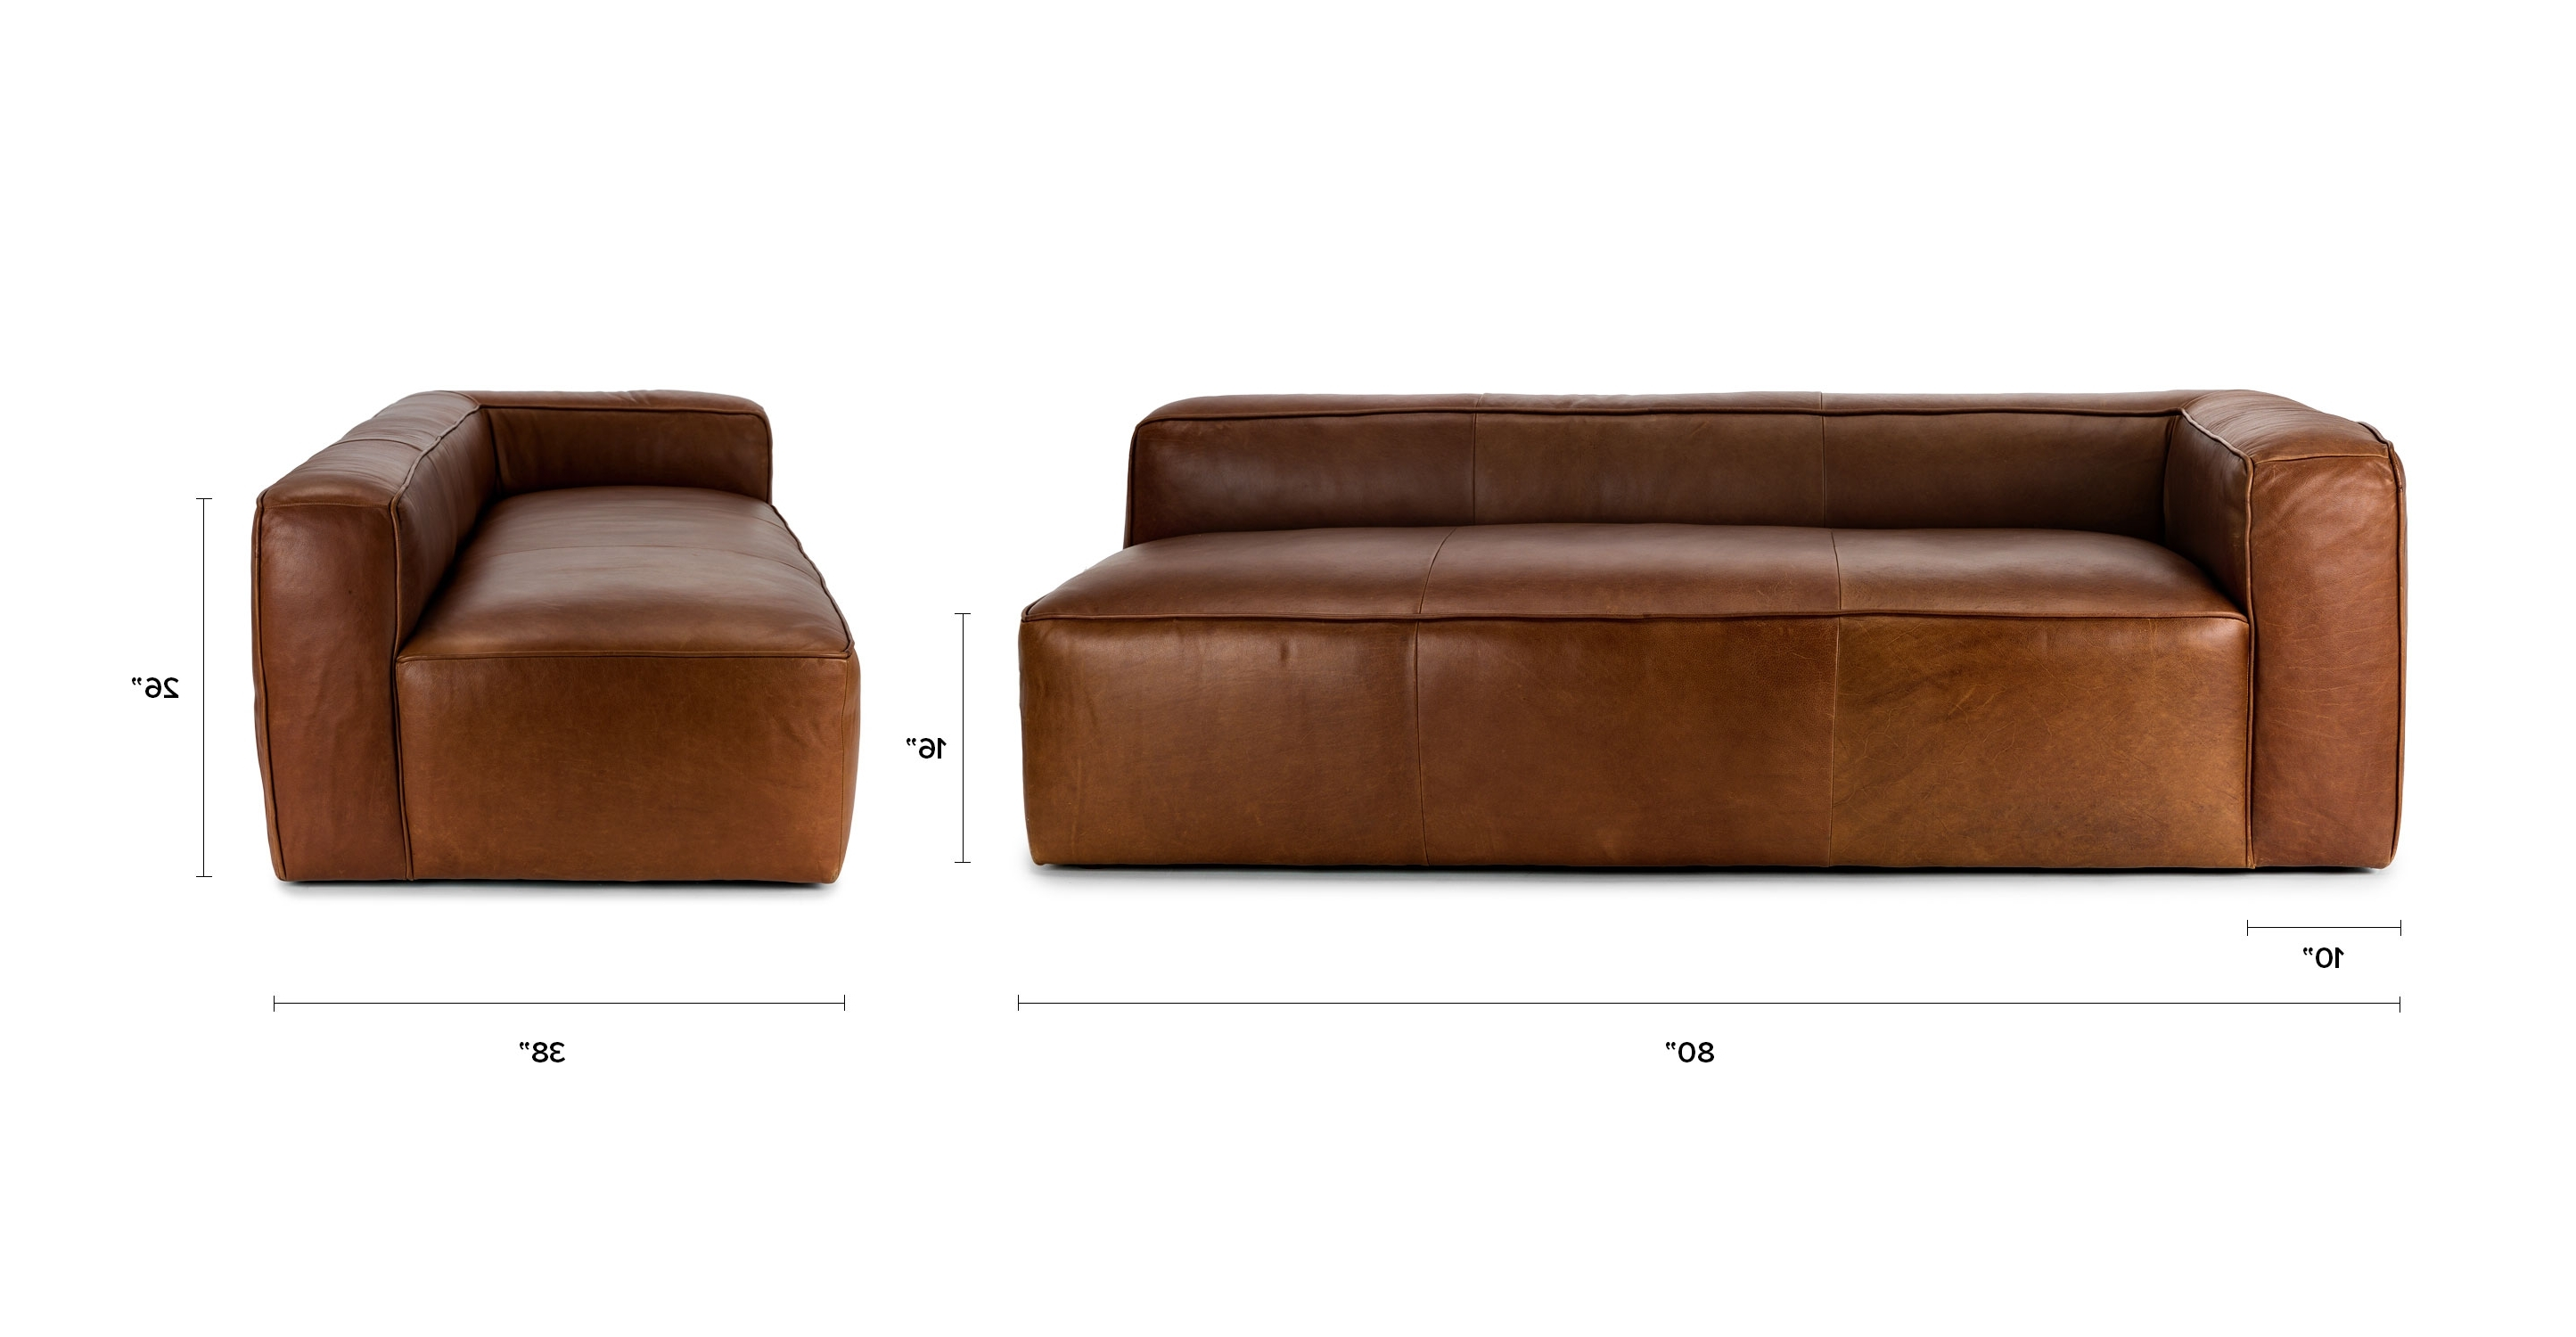 Article Mello Modern In Most Up To Date Niagara Sectional Sofas (View 2 of 20)